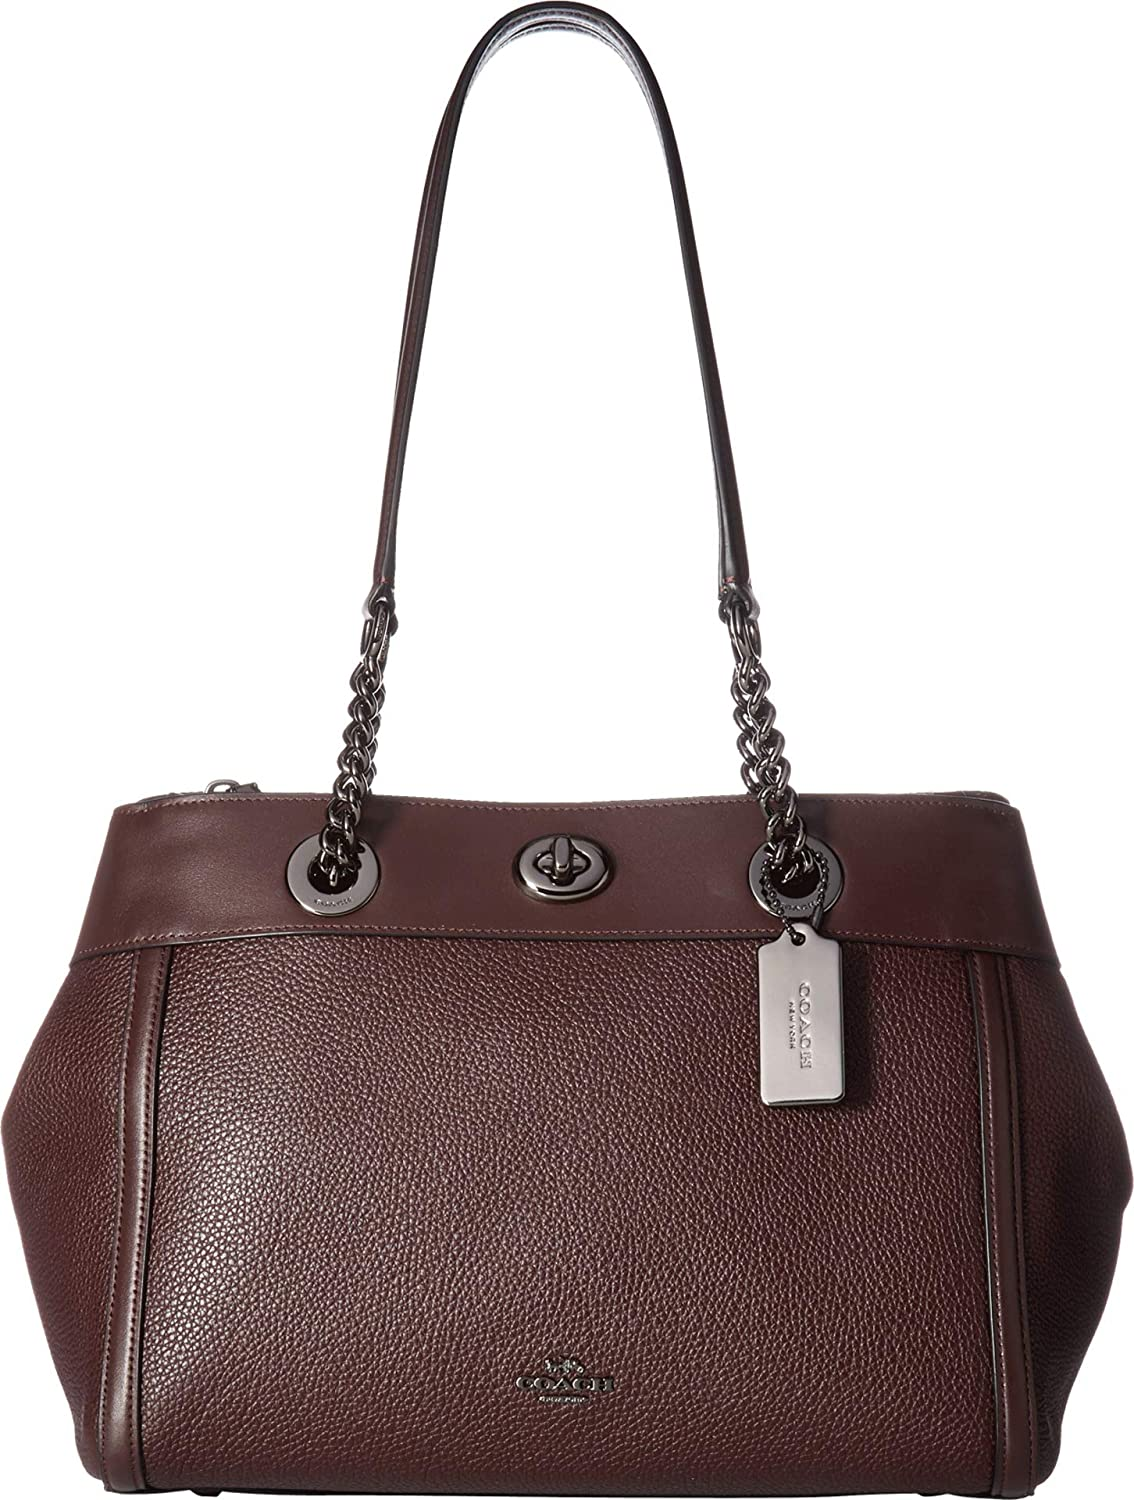 e384b8cadc COACH Women s Turnlock Edie Carryall in Mixed Leather Dark Oxblood One  Size  Handbags  Amazon.com